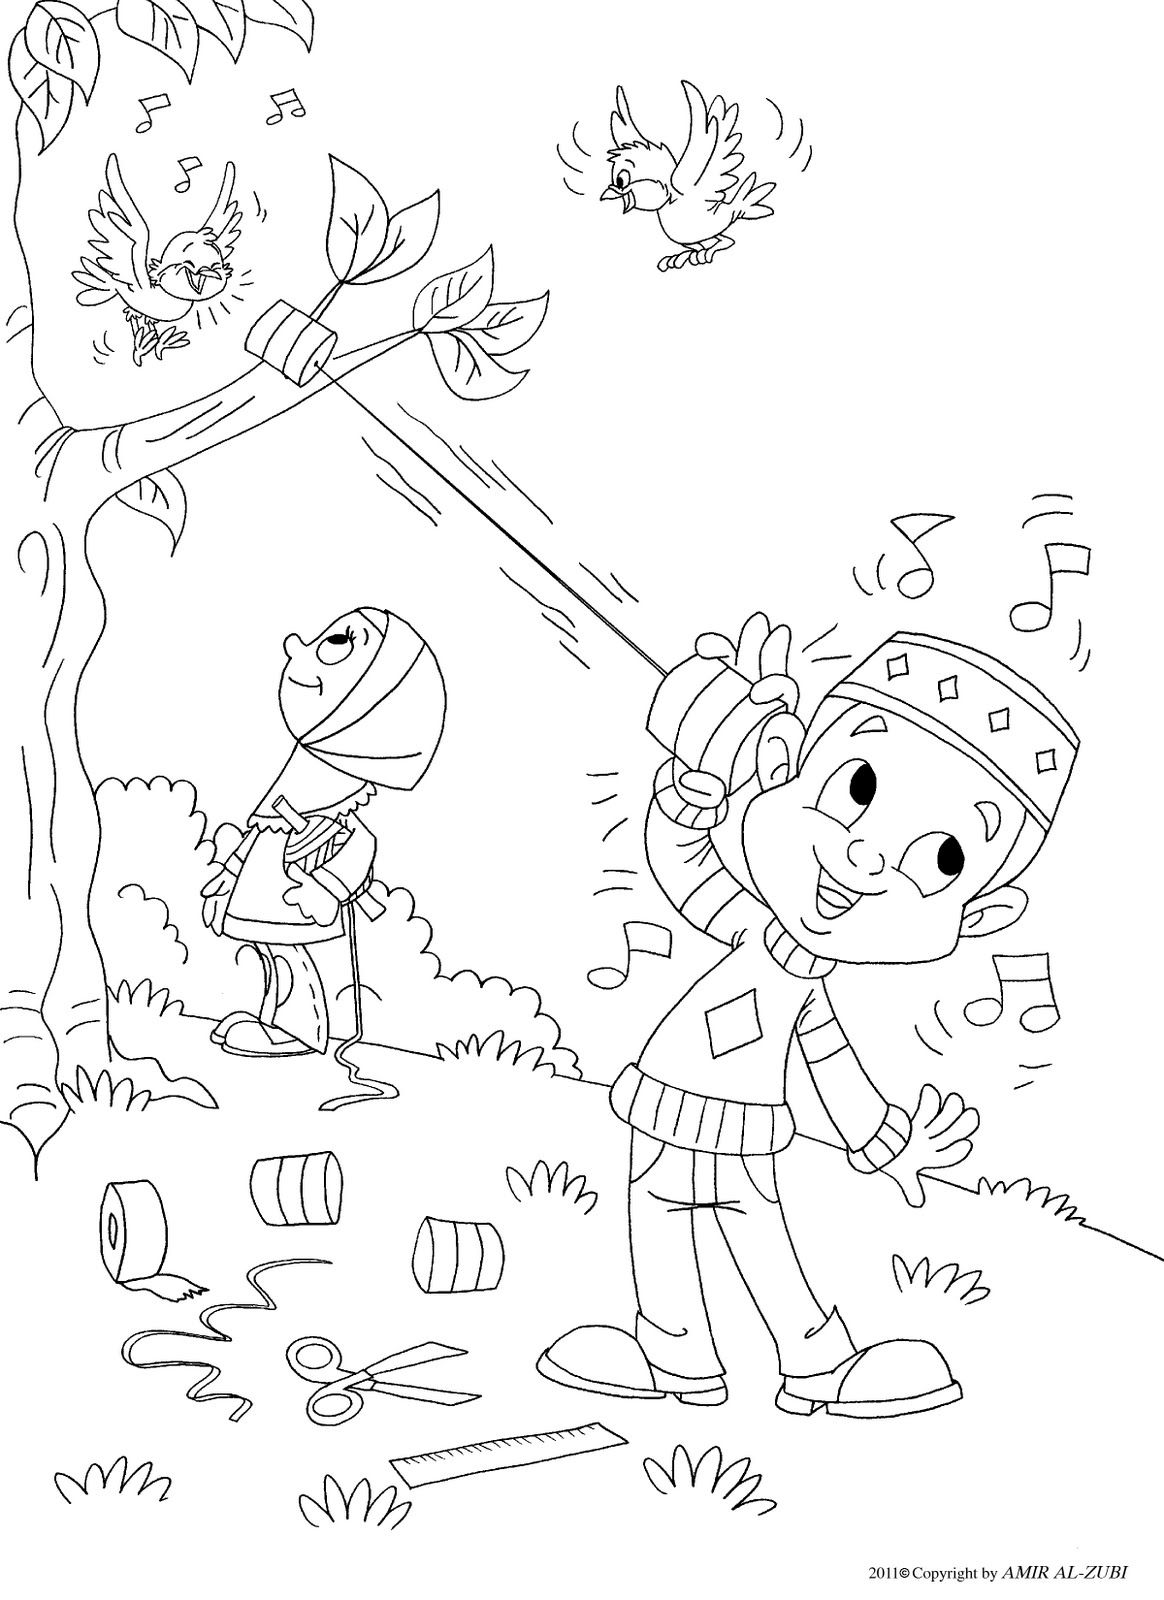 Outside Coloring Page Muslim Boy Coloriages Islamiques